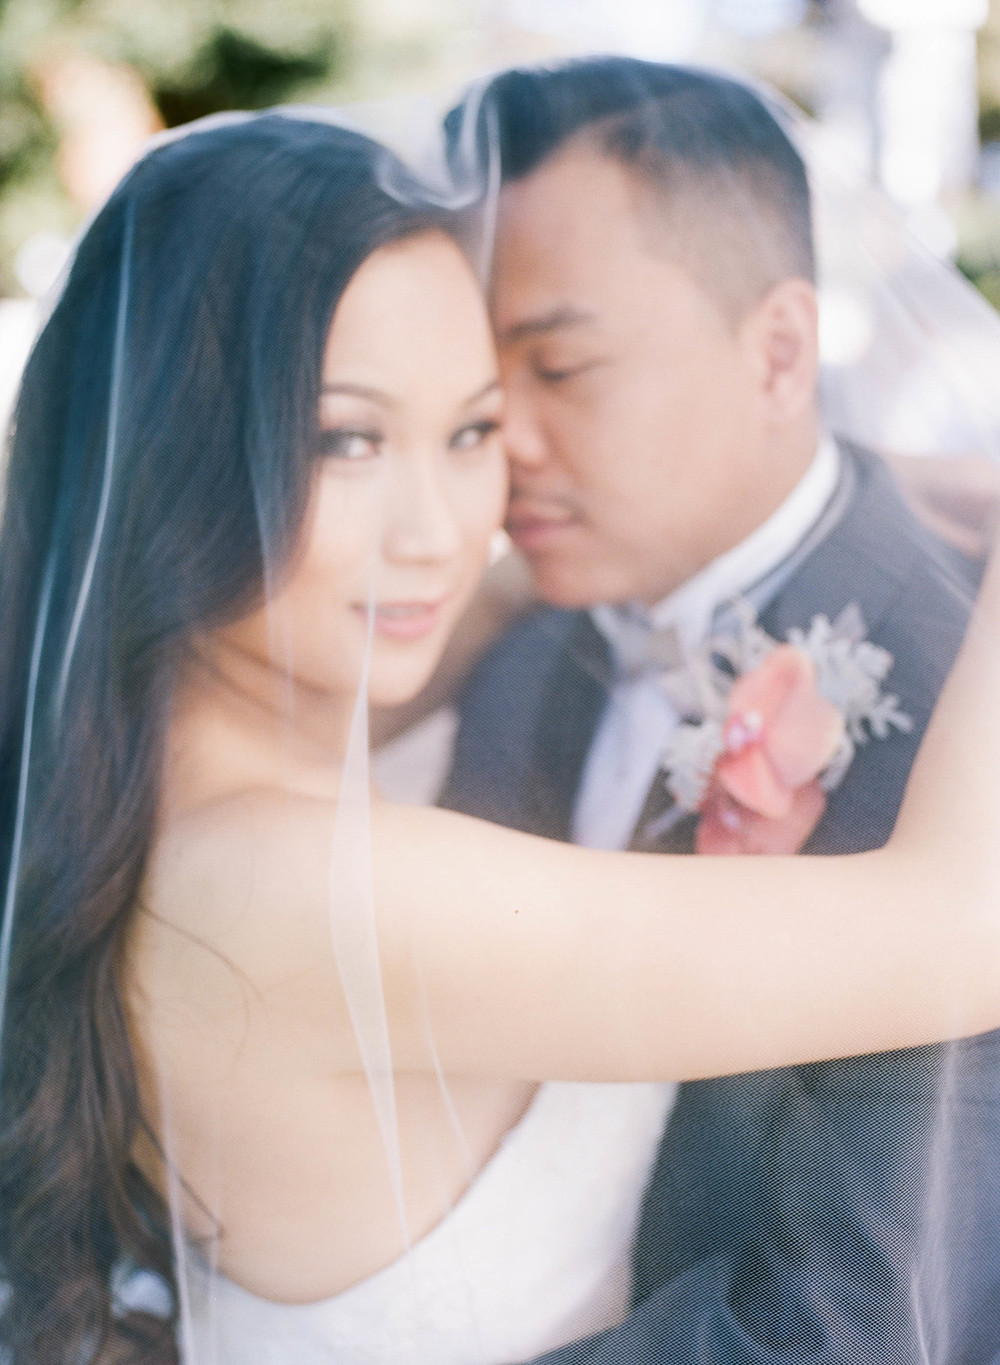 Second Shooter: Tom Masaru IG @tomasaru   Videographer:   Tri Luu Films      Hair & Make up: Wendy Tran IG @berry_wendy    Venue:   Oakland Asian Cultural Center      Florals:   Vo Floral Design   Event Design:   1000 Fine Events